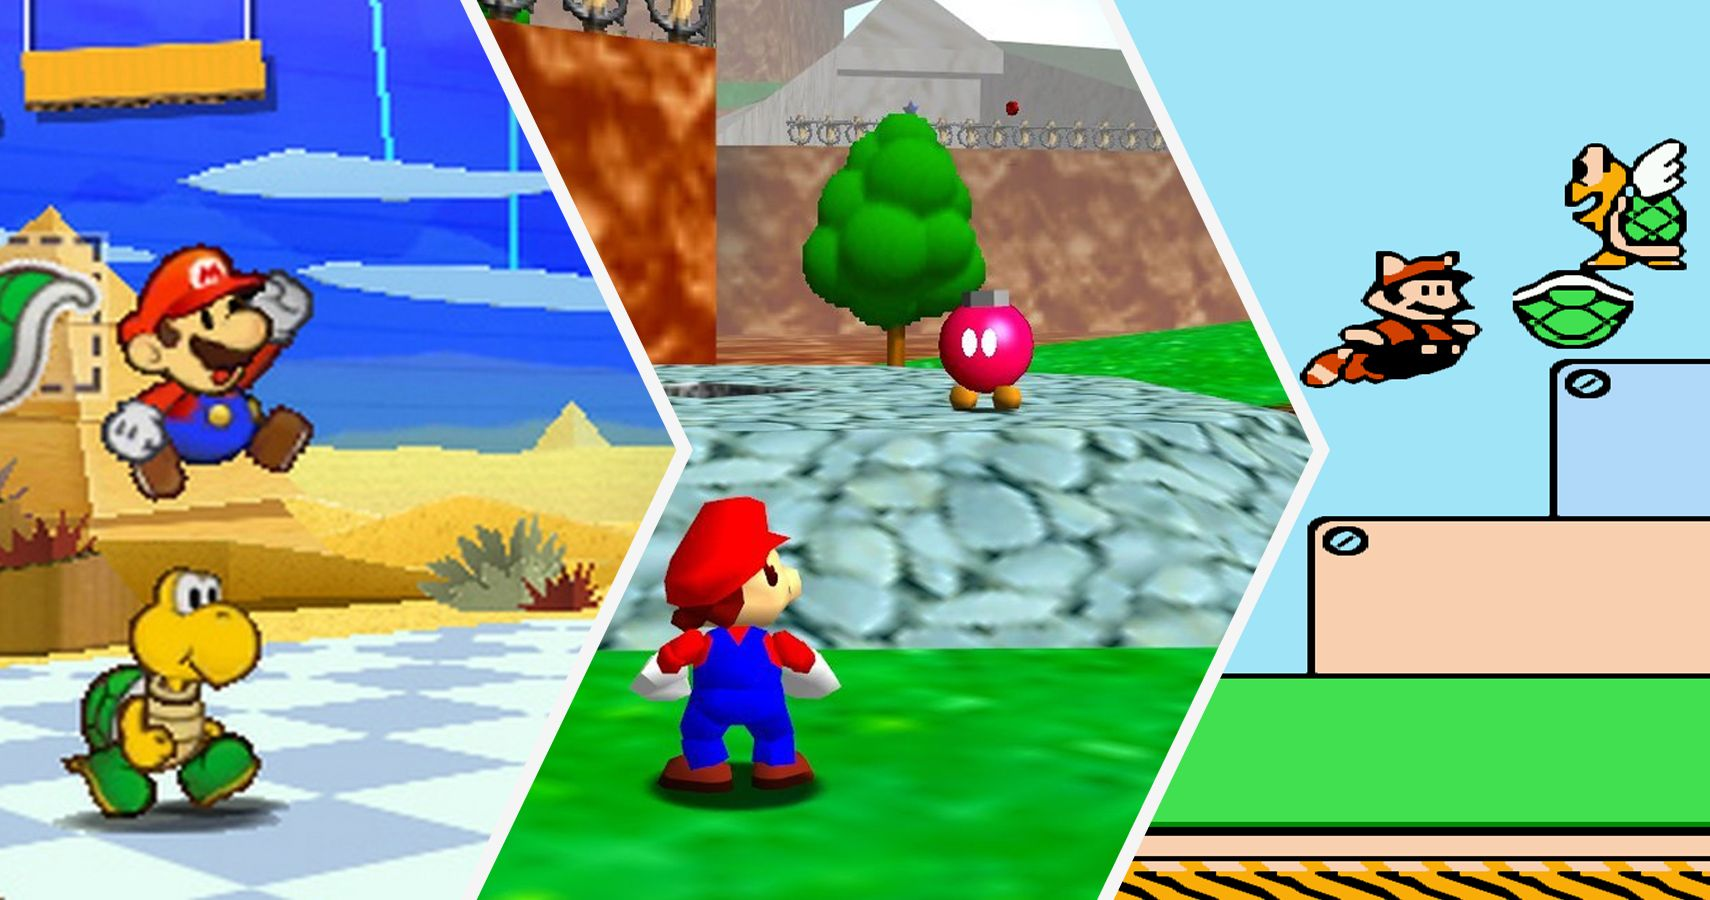 20 Greatest Super Mario Games Of All Time And 10 Of The Worst